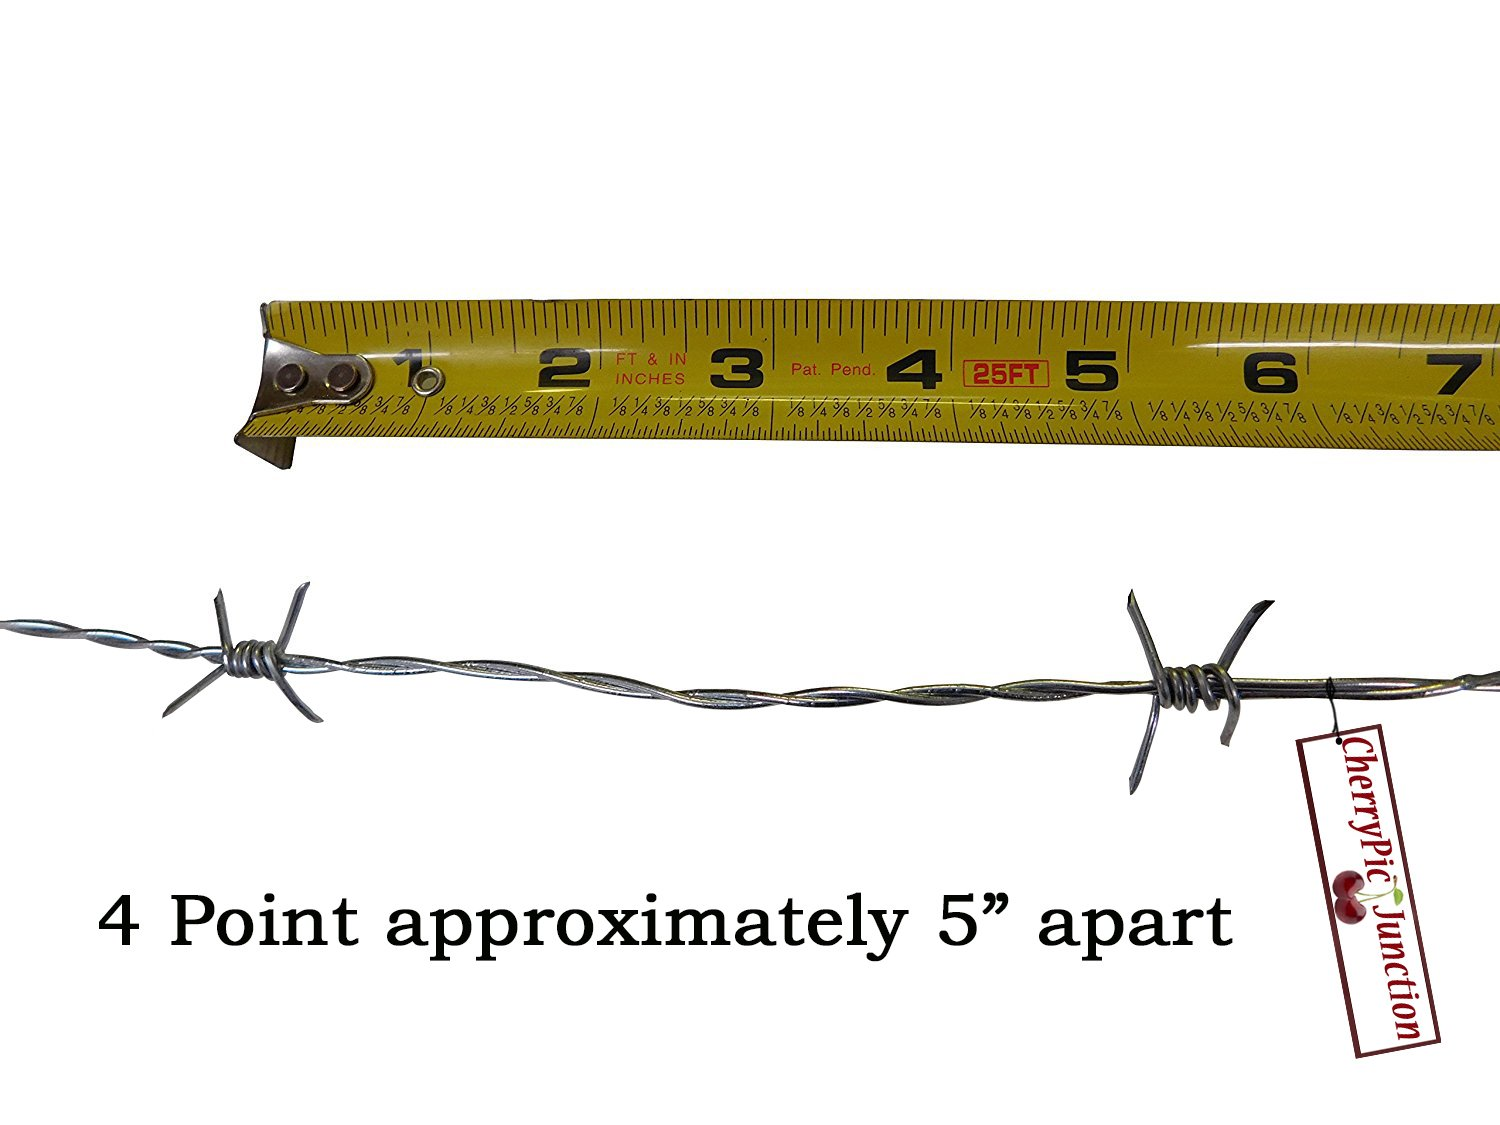 Amazon.com: 25 Feet Real Barbed Wire - Light Duty 18 guage 4 pt MADE ...